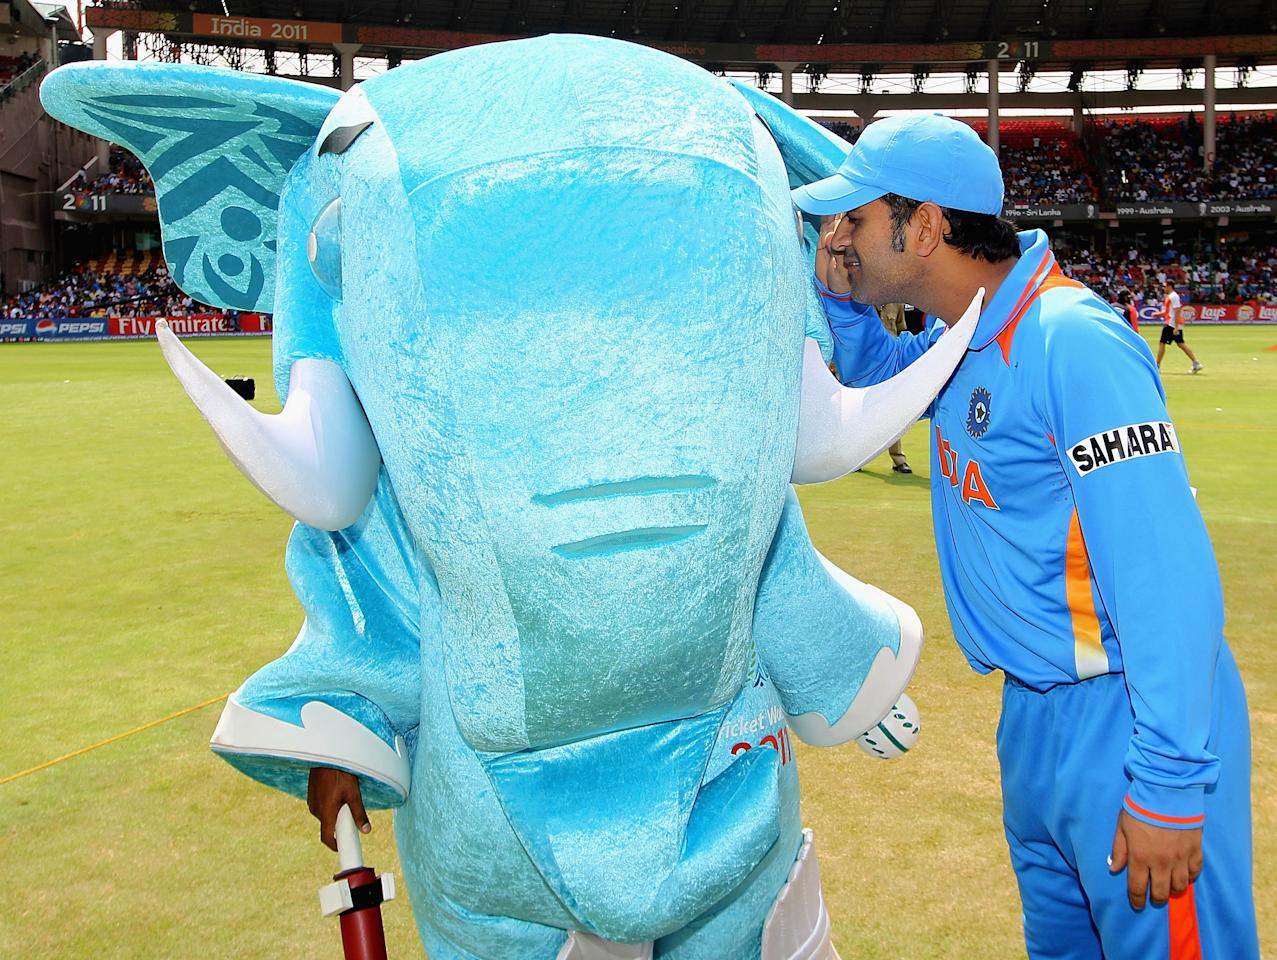 BANGALORE, INDIA - FEBRUARY 27:  MS Dhoni of India gets a closer look at the mascot 'Stumpy' ahead of the 2011 ICC World Cup Group B match between India and England at M. Chinnaswamy Stadium on February 27, 2011 in Bangalore, India.  (Photo by Hamish Blair/Getty Images)